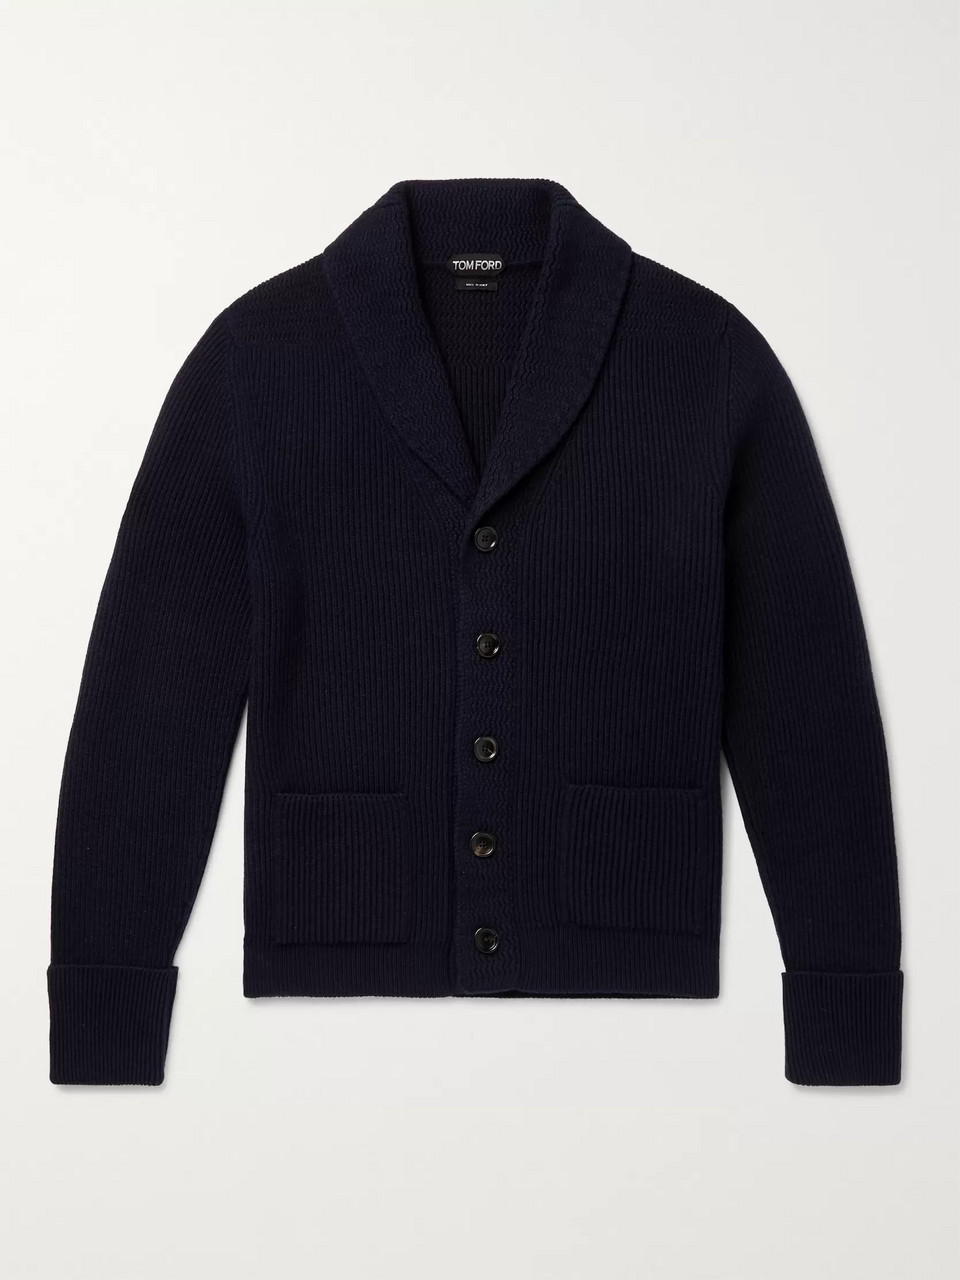 TOM FORD Shawl-Collar Ribbed Cashmere Cardigan